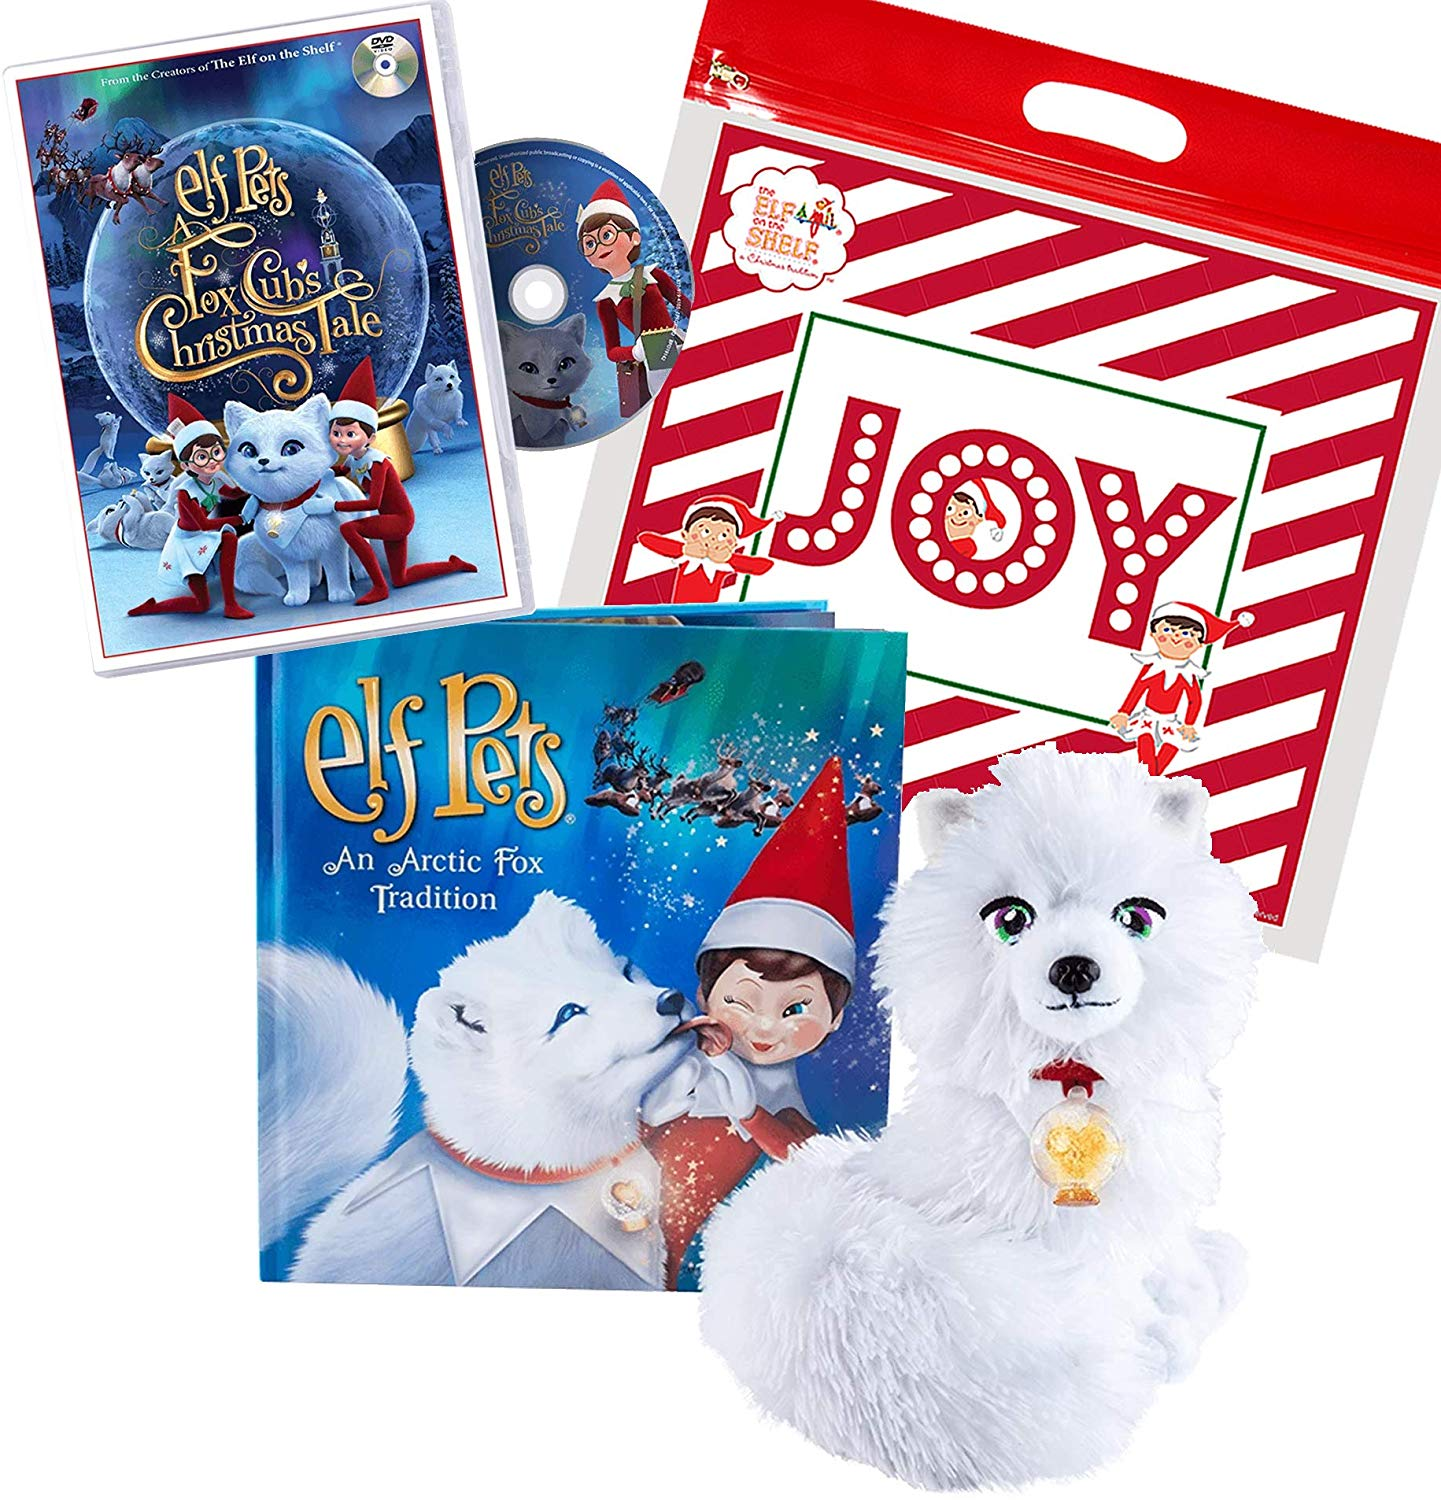 The Elf on the Shelf Set: an Arctic Fox Tradition and A Fox Cub Christmas Tale DVD Includes Exclusive Joy Bag by The Elf on the Shelf, $41 @amazon.com